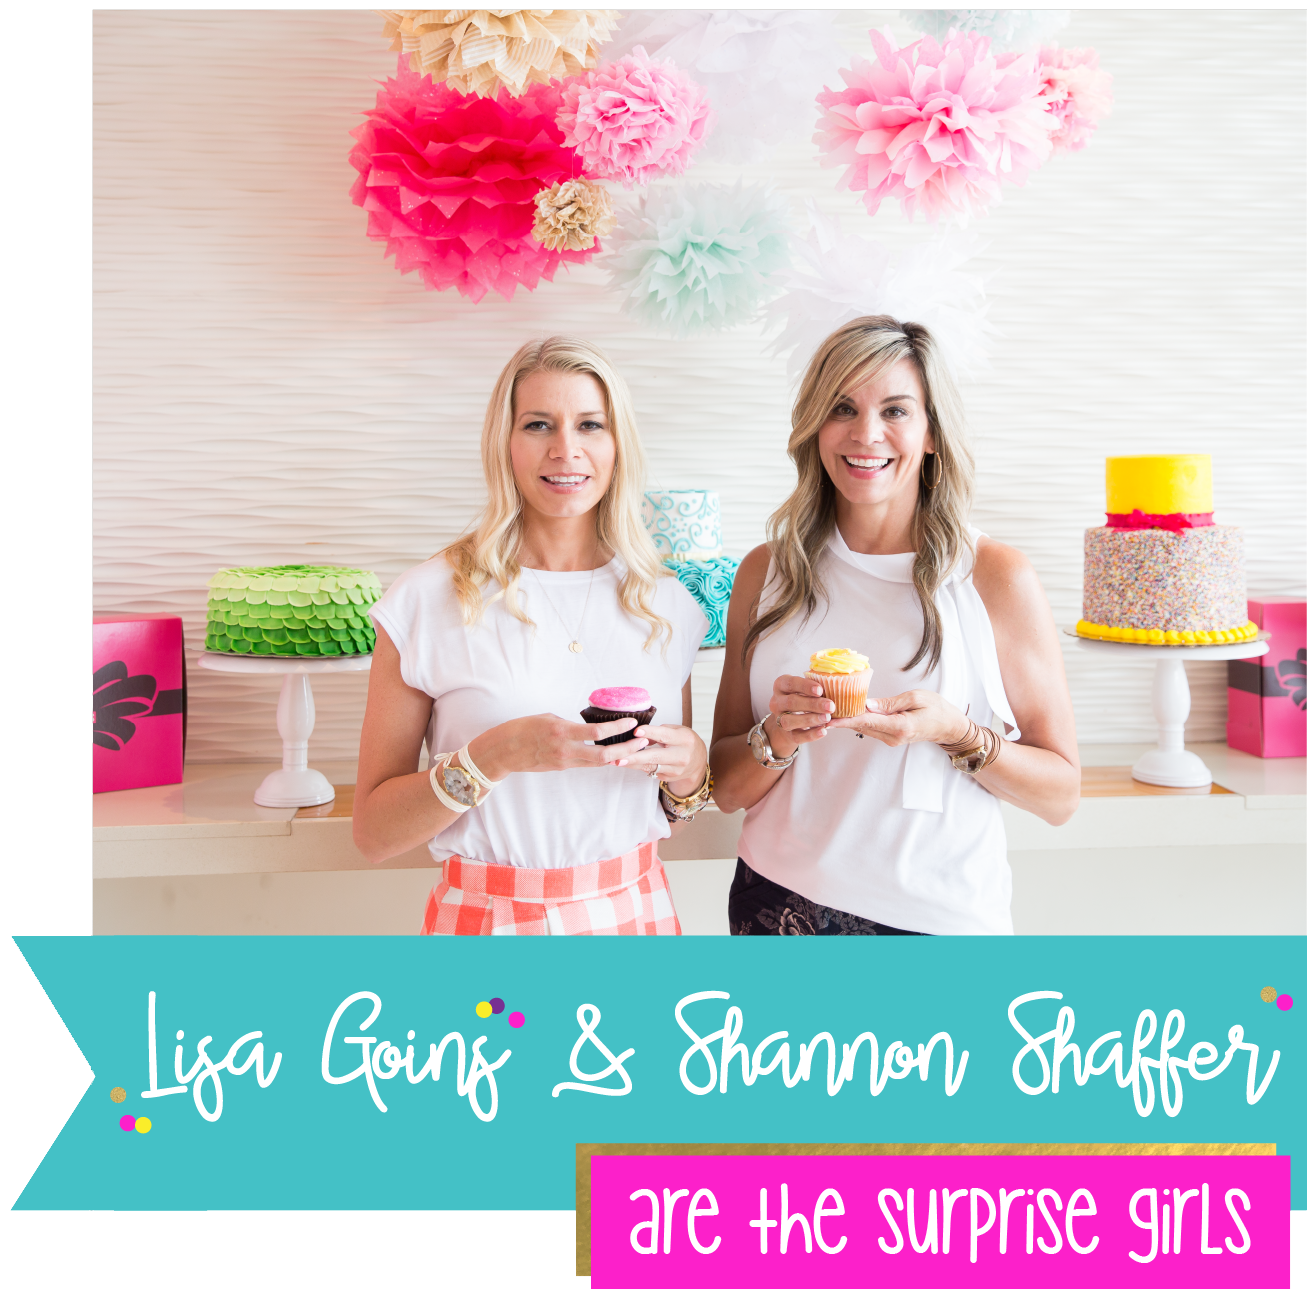 Surprise Gift Co. : Lisa Goins & Shannon Shaffer